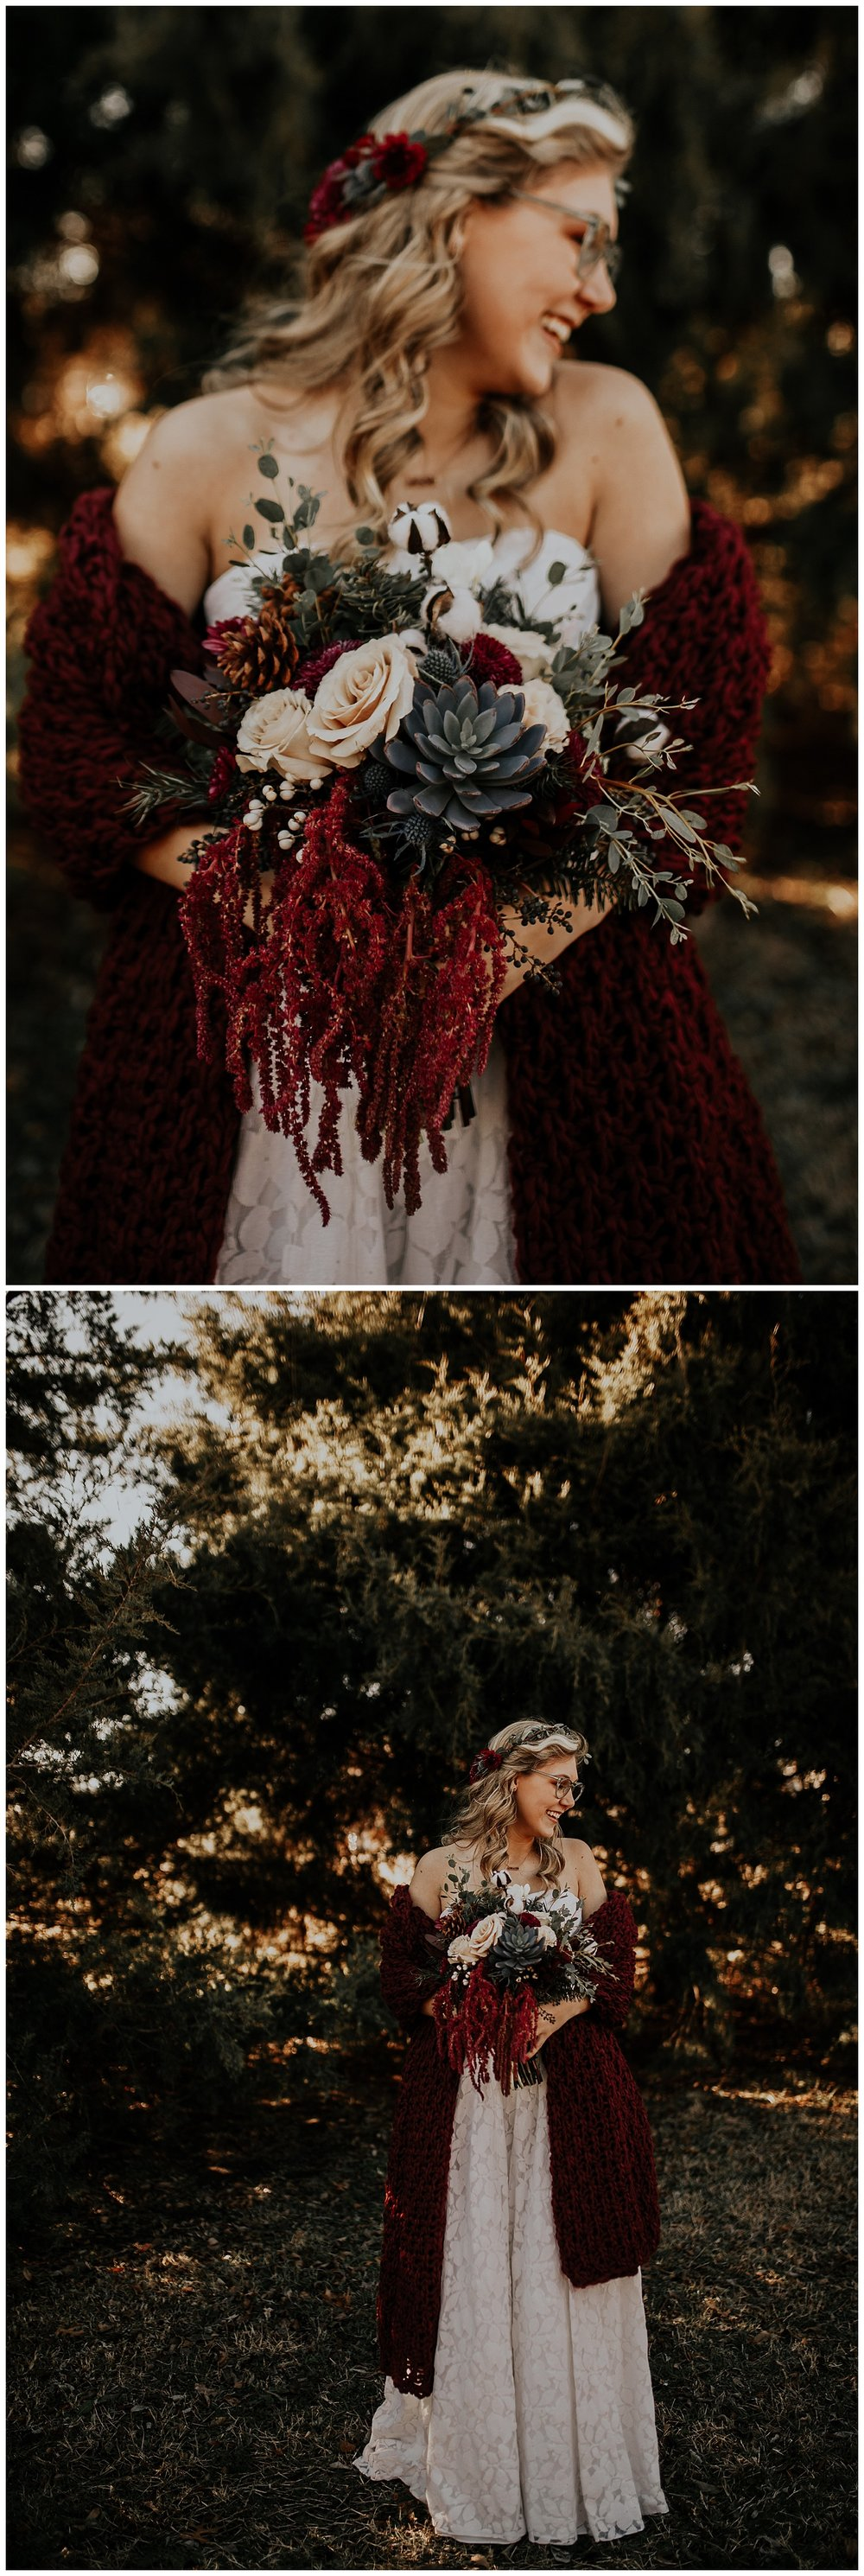 Laken-Mackenzie-Photography-Brownlee-Bridal-Session-Dallas-Fort-Worth-Wedding-Photographer05.jpg